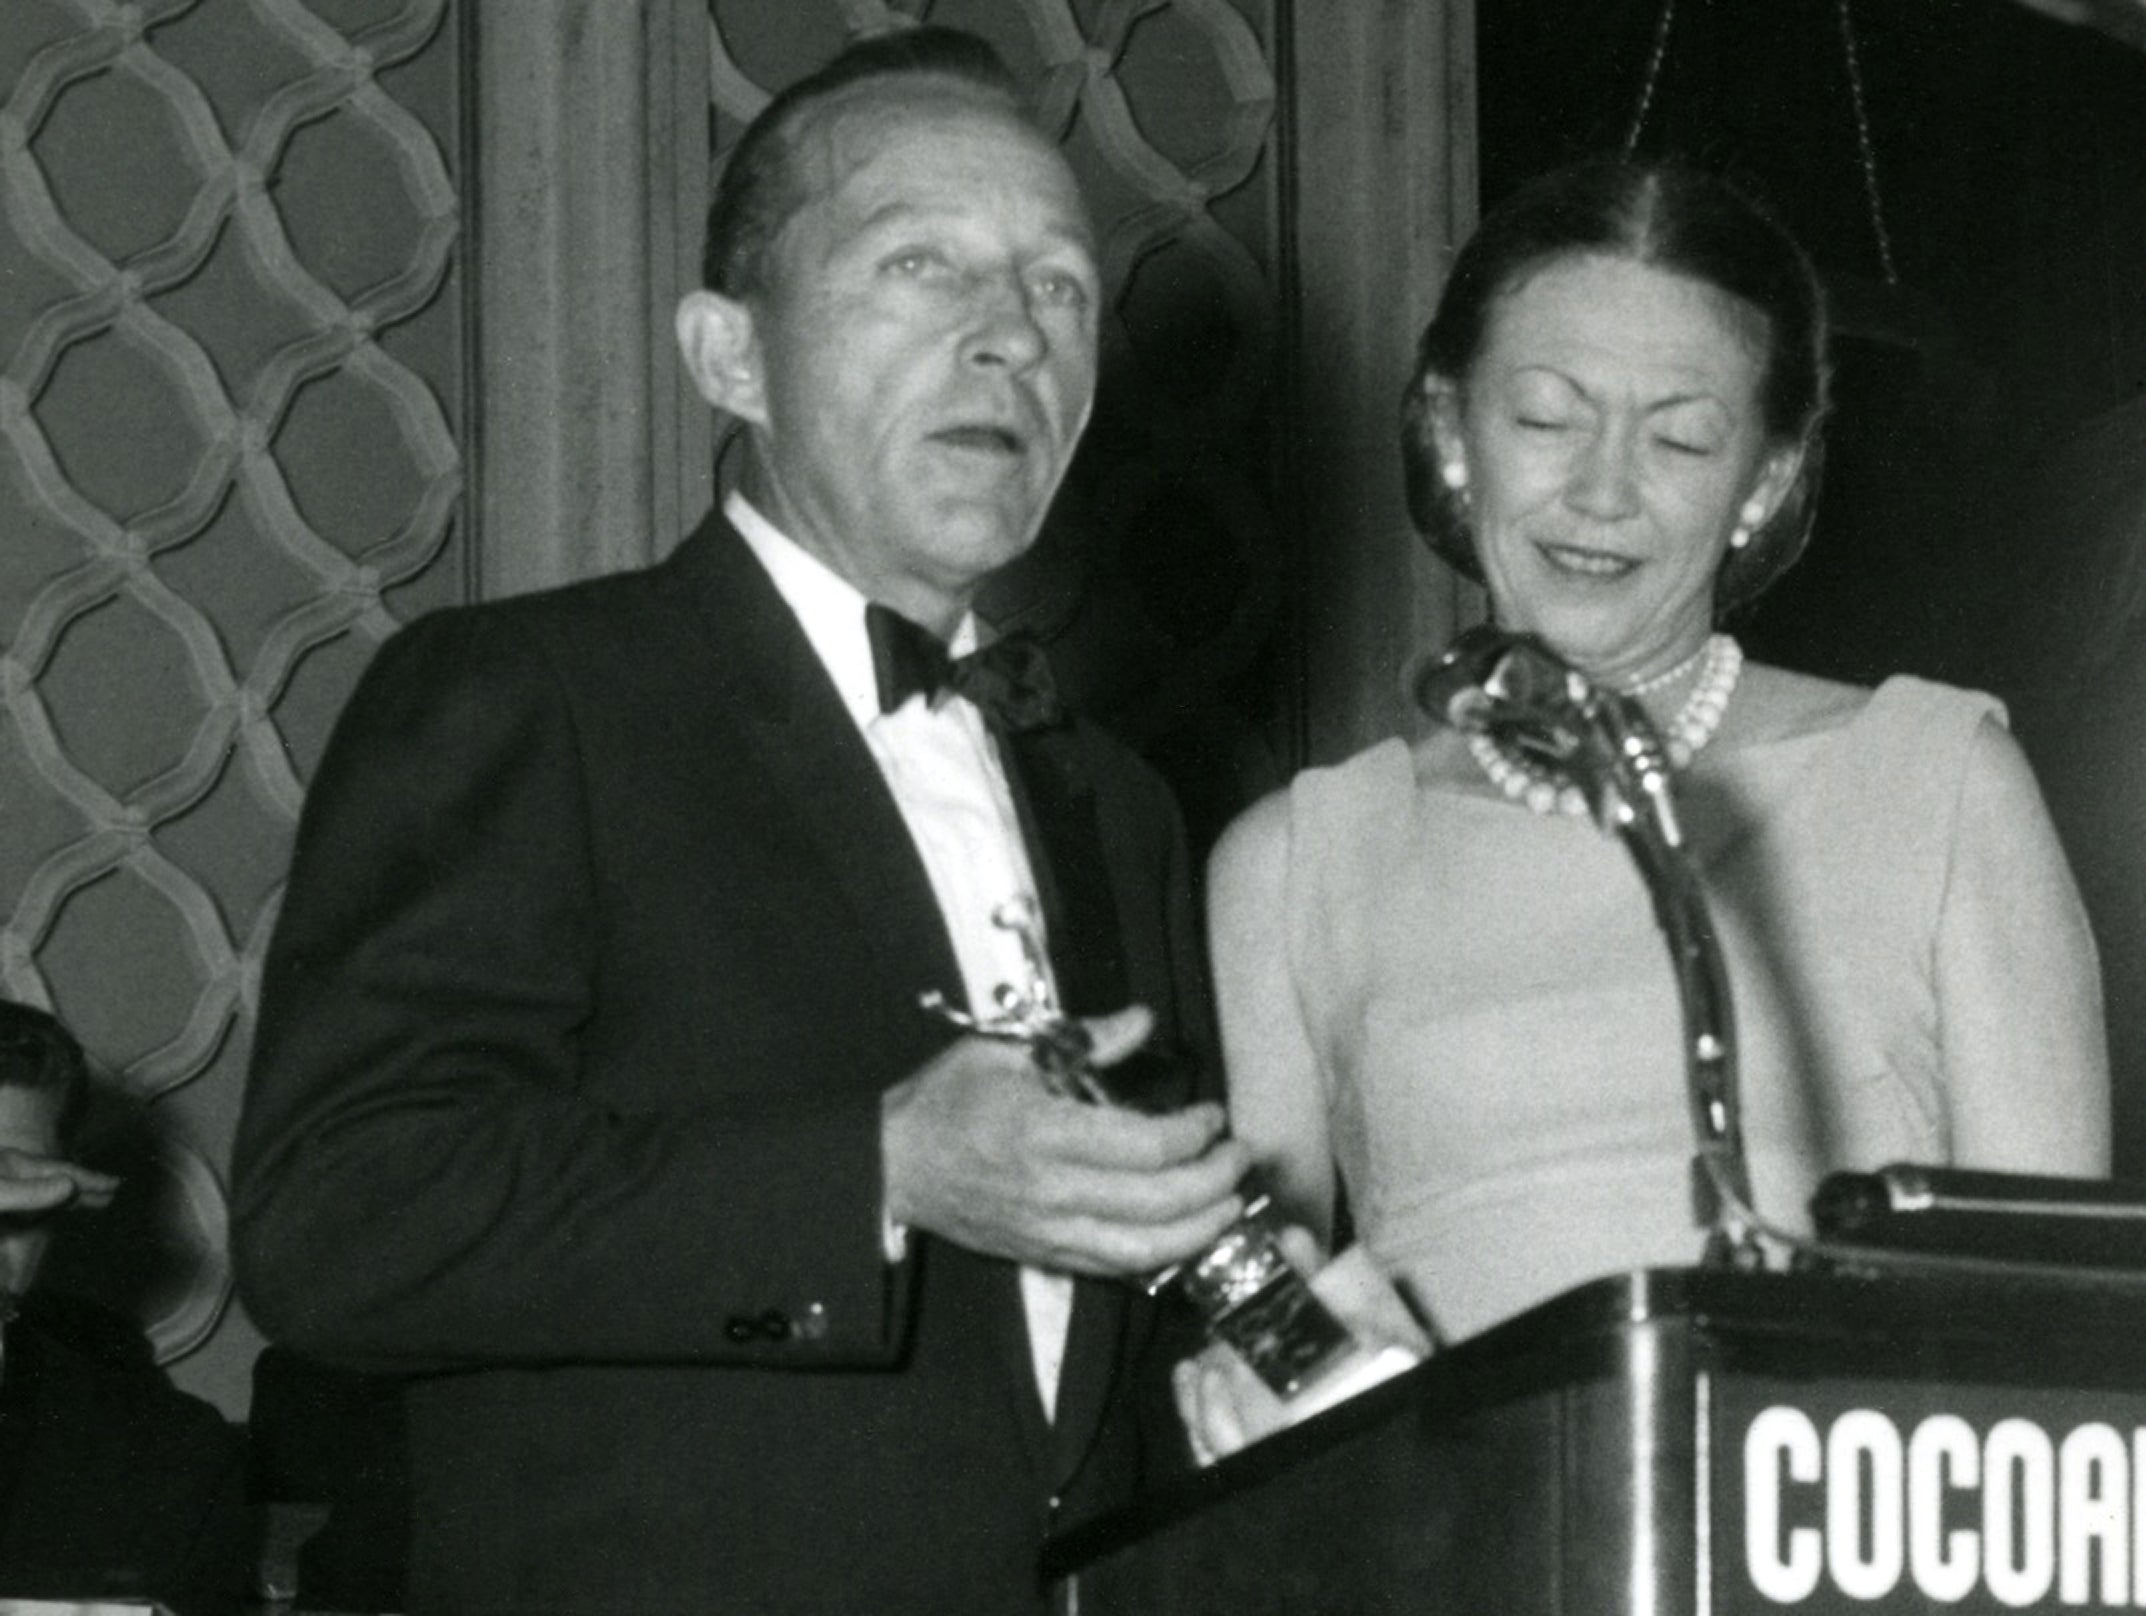 Actor and singer Bing Crosby, Cecil